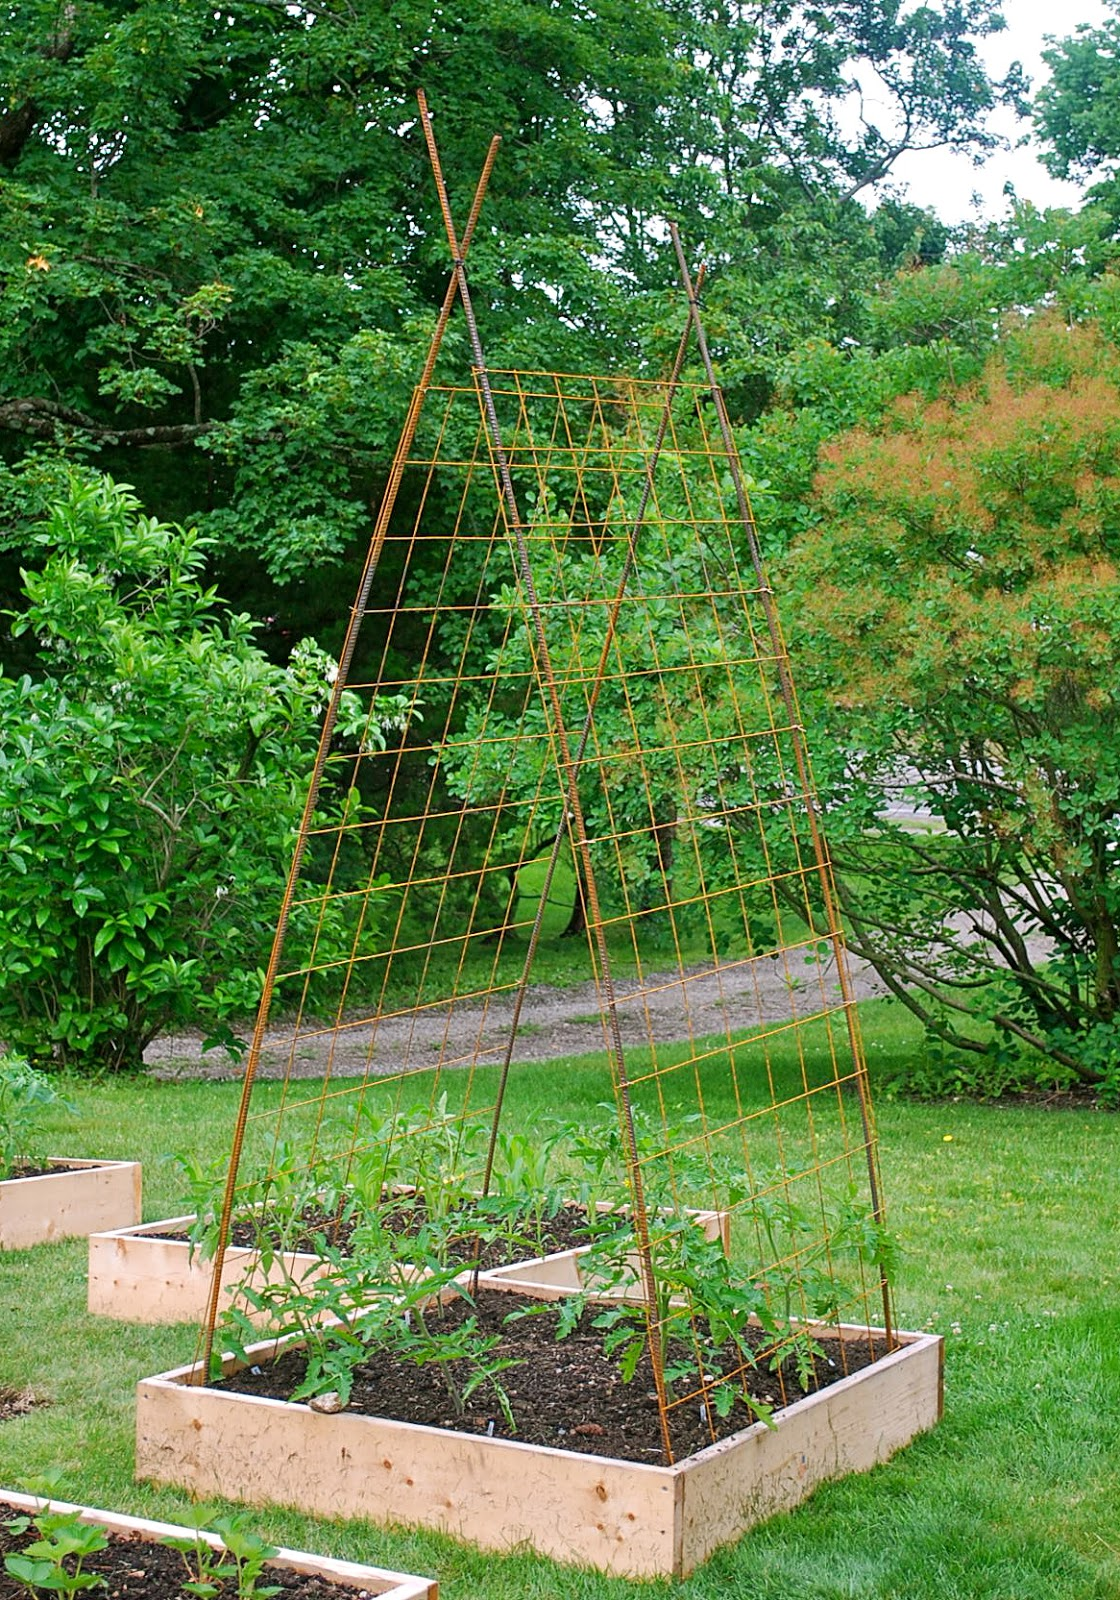 seeding the good life building tomato trellises from rebar and remesh i was leaning towards building homemade tomato cages out of concrete reinforcement wire as they seem to work for my fellow garden bloggers and are a